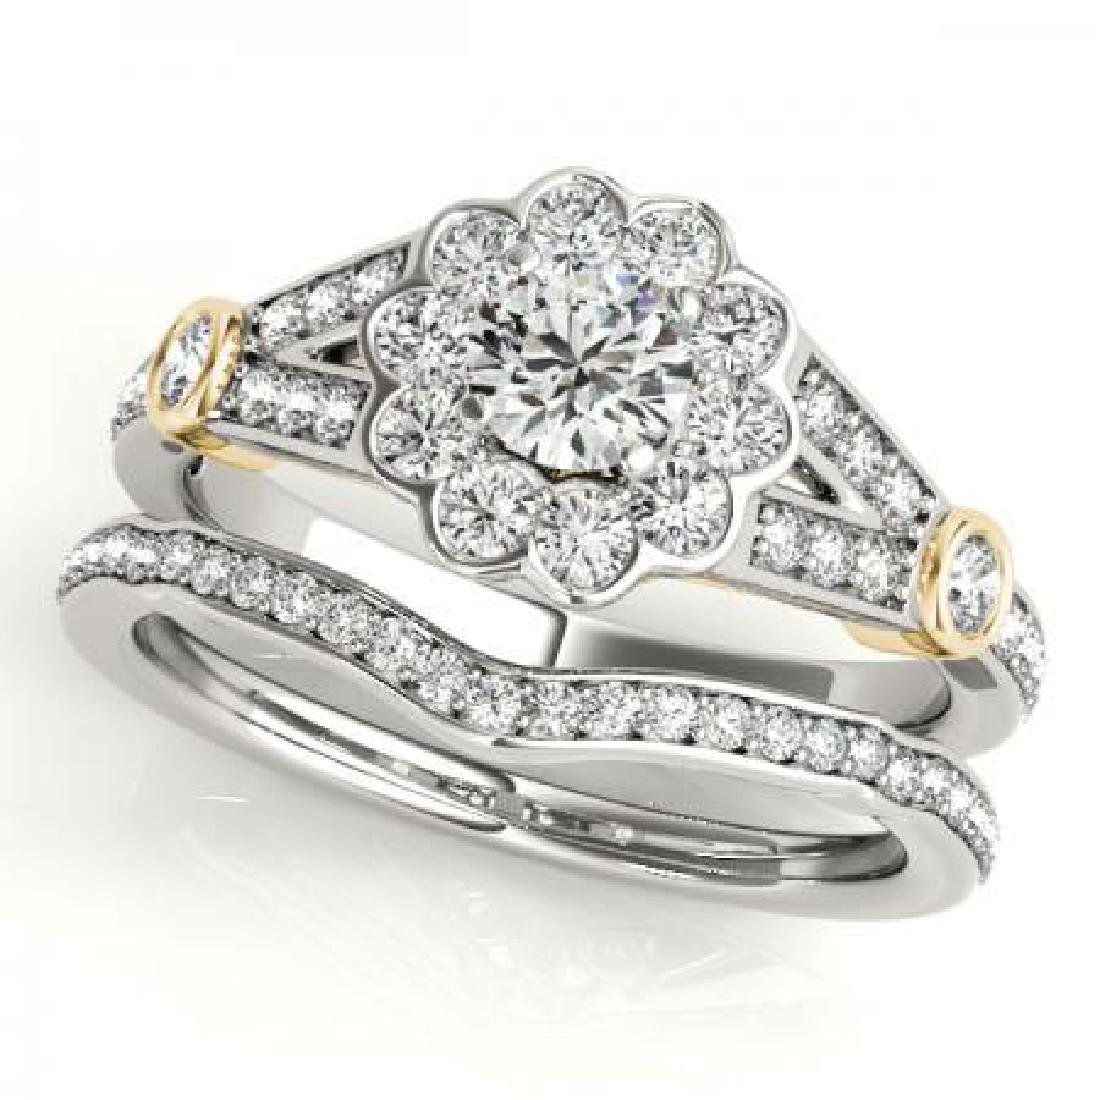 CERTIFIED 18KT TWO TONE GOLD 1.12 CT G-H/VS-SI1 DIAMOND